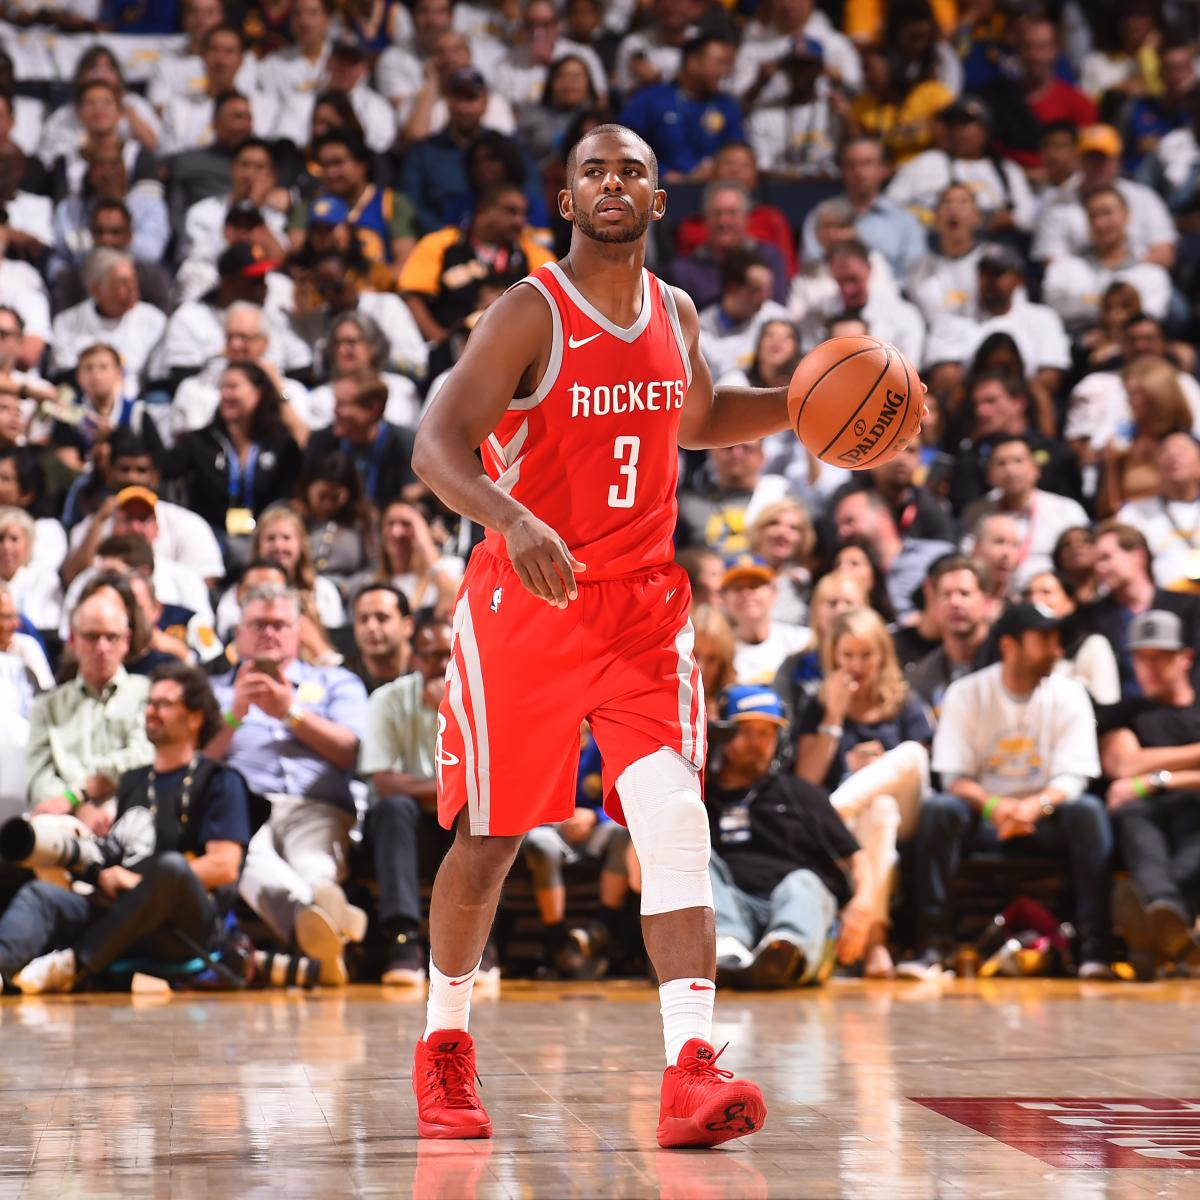 Rockets Vs Warriors Head To Head This Season: Chris Paul Ruled Out Vs. Lakers With Adductor Injury